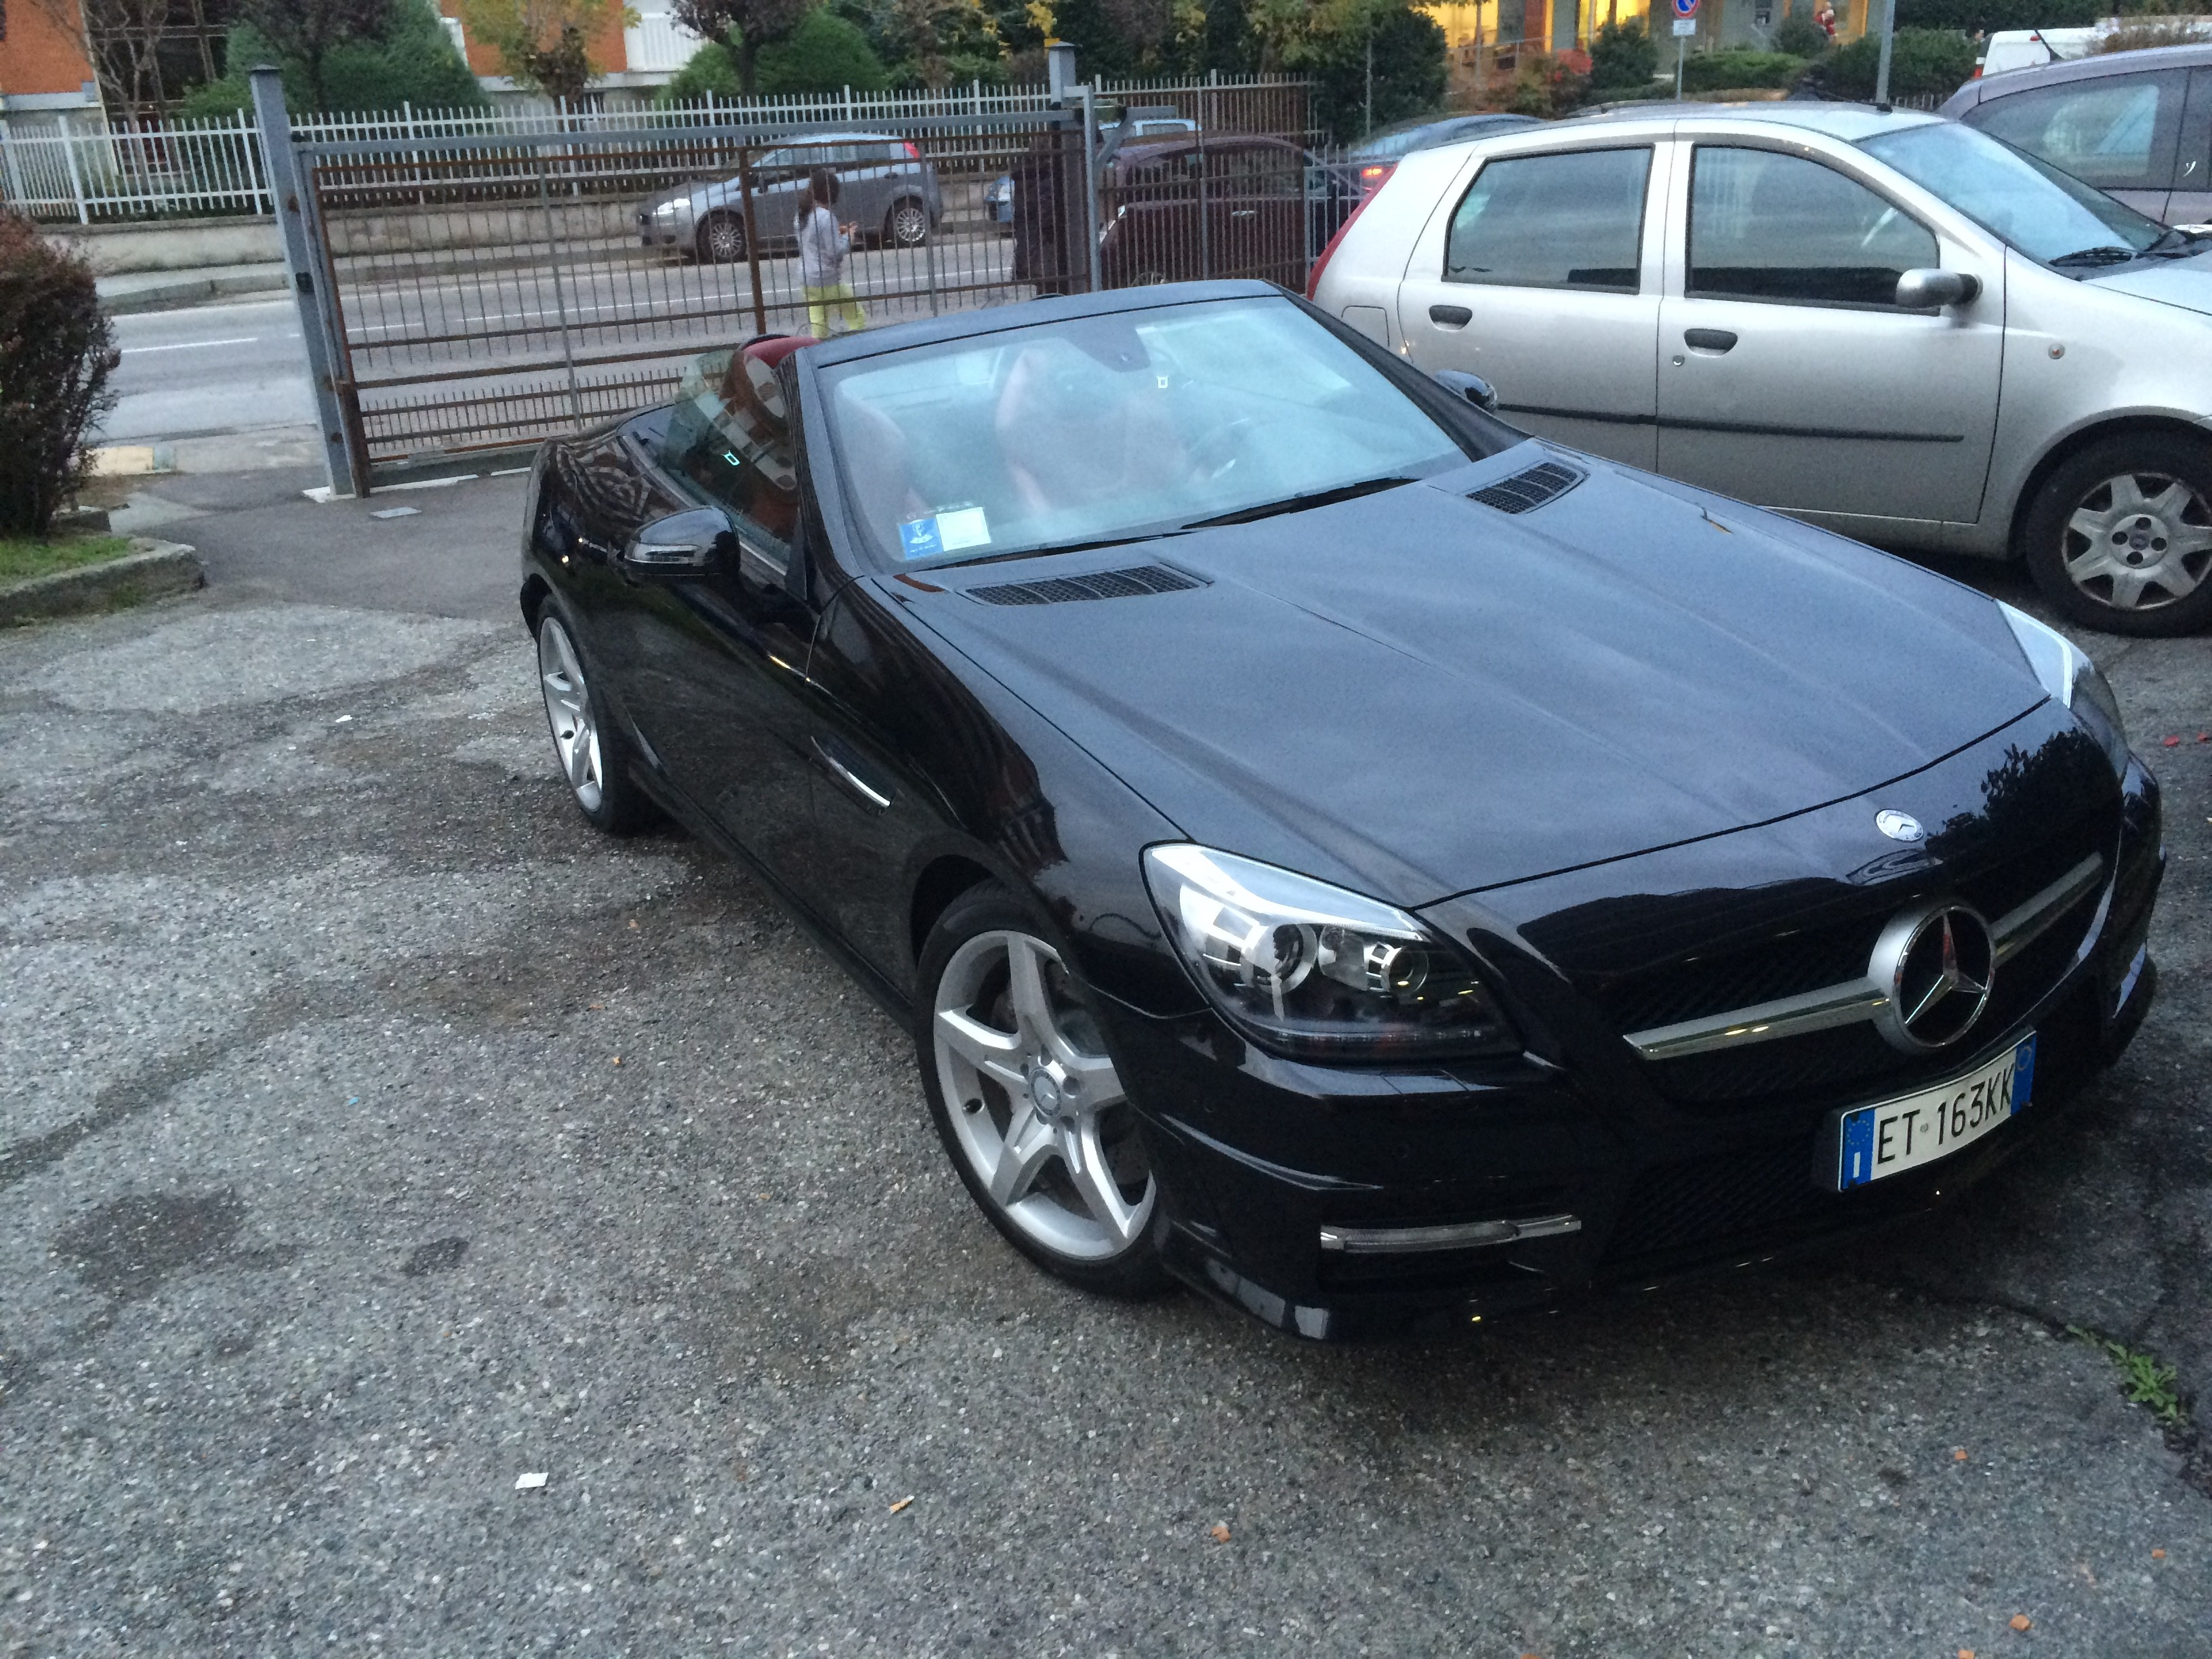 Mercedes SLK Essence Automatique 2013 Premium AMG